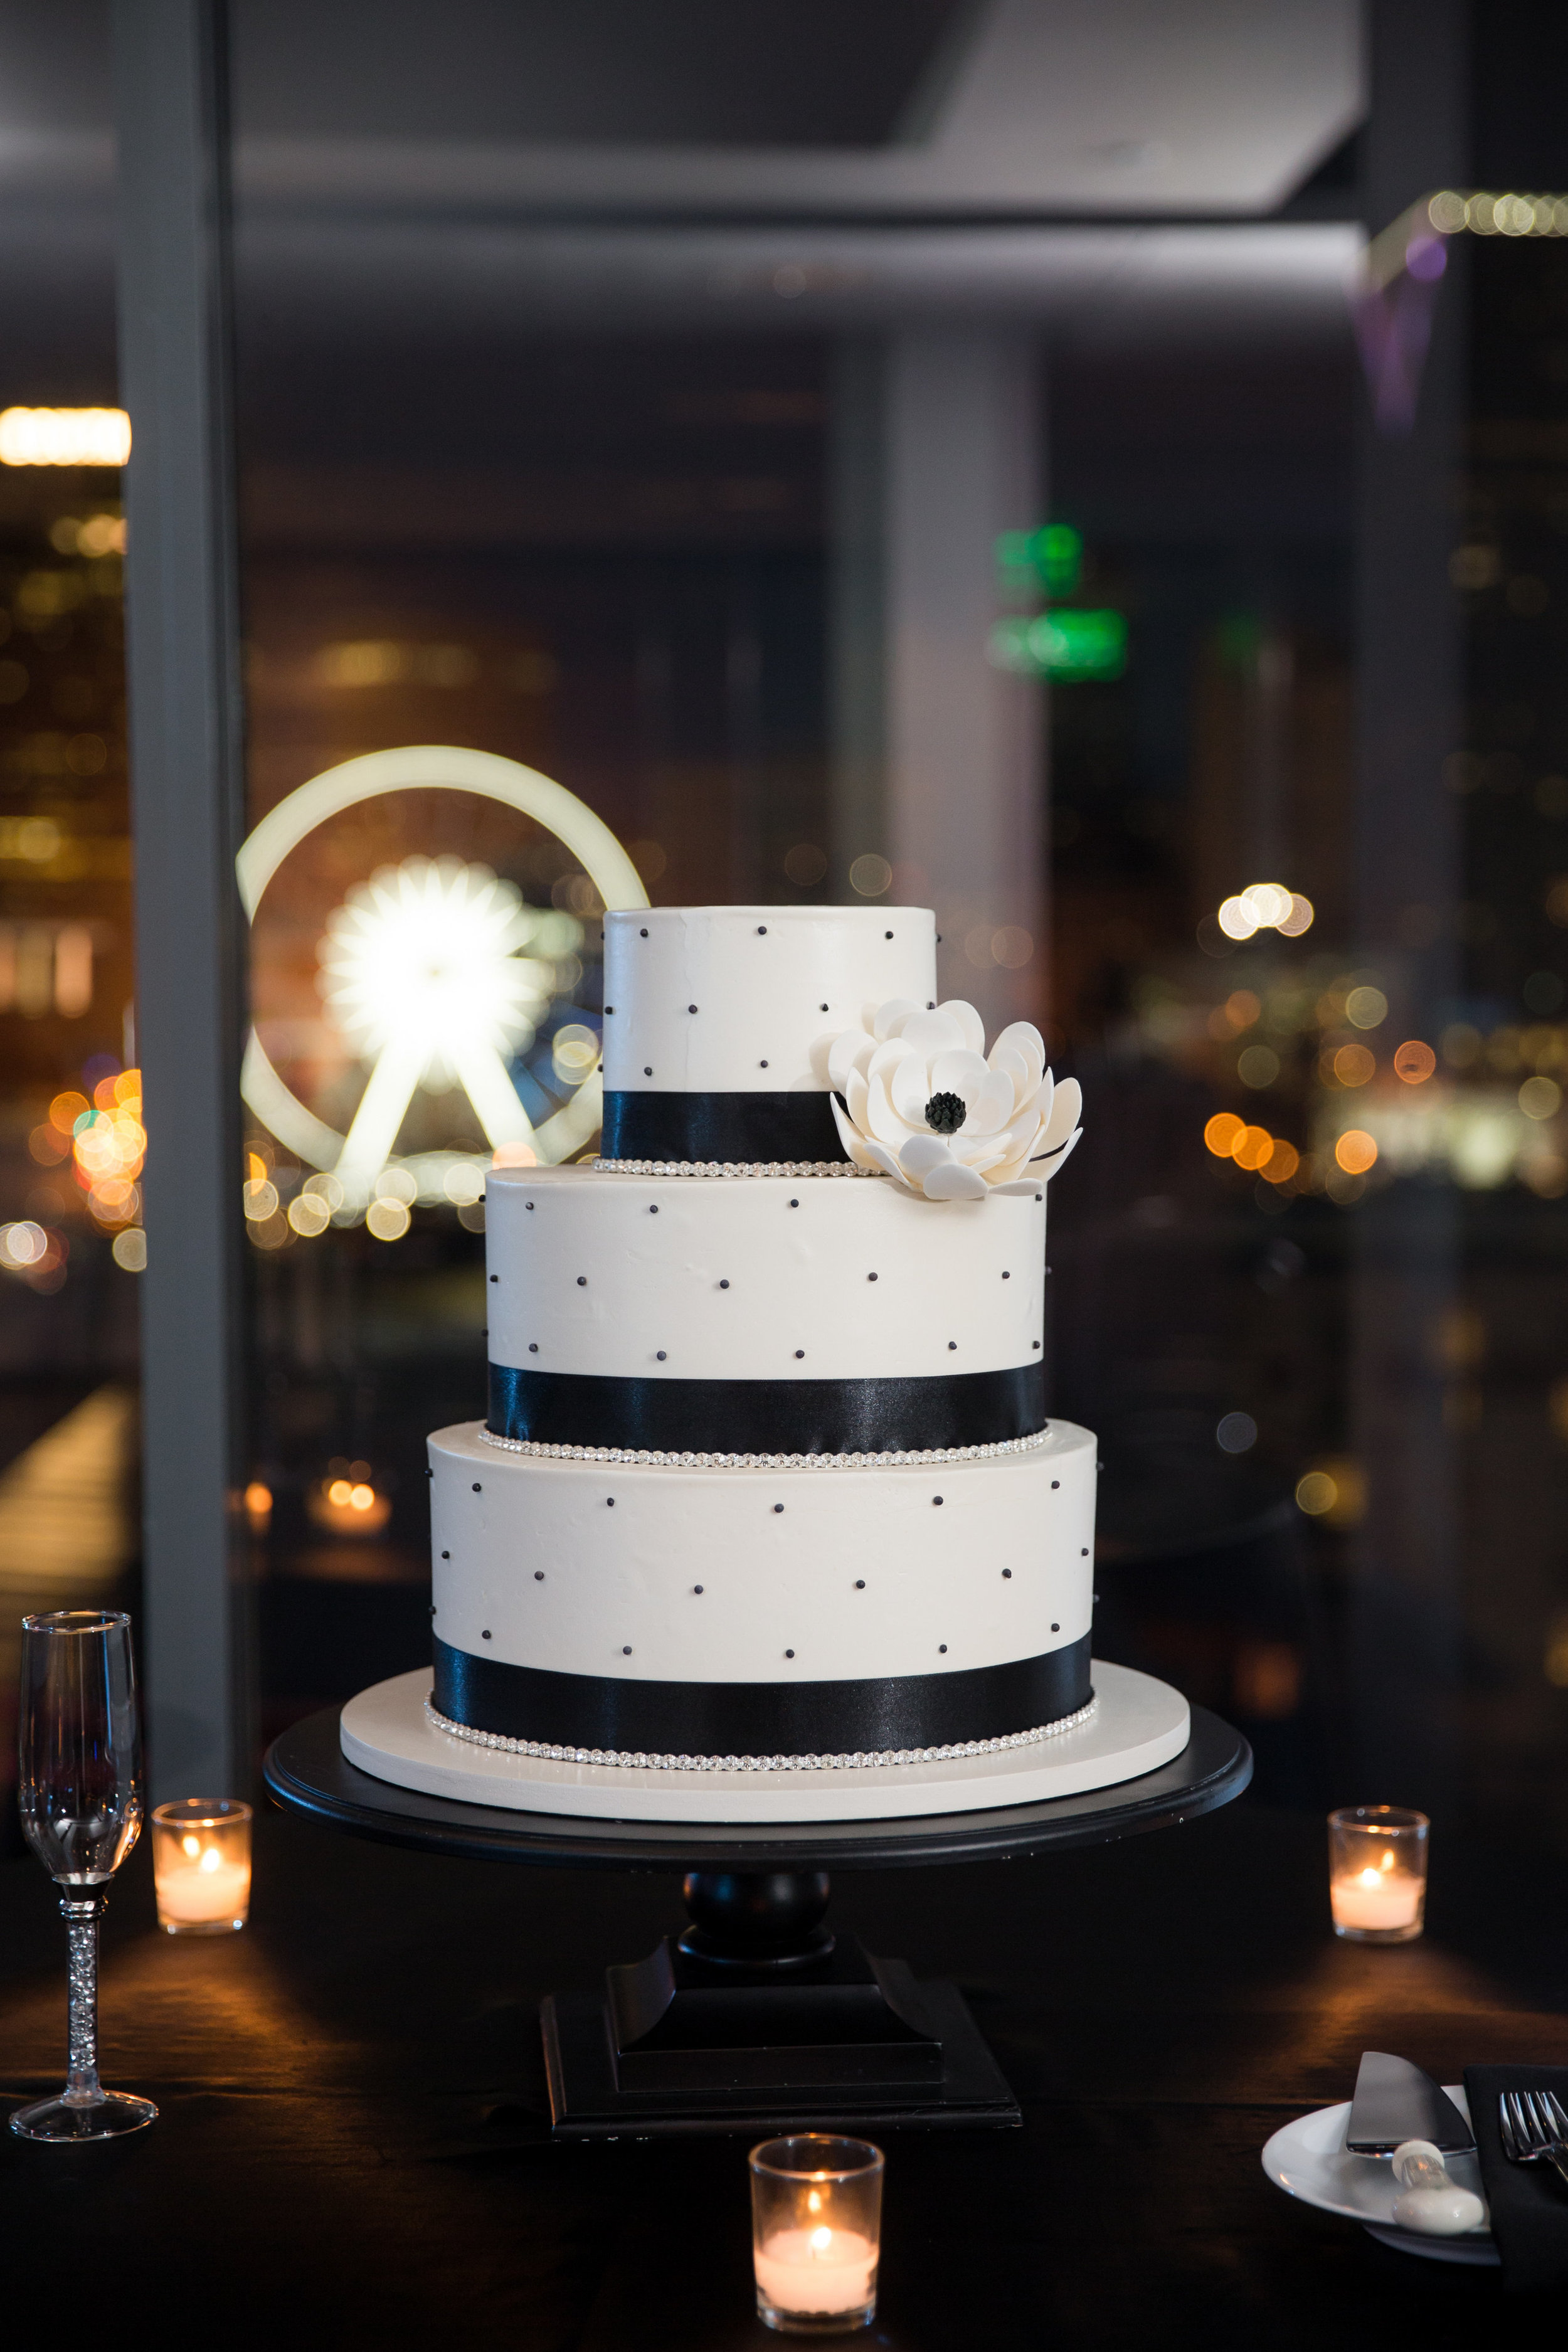 wedding - Black_Swiss_dots_and_black_ribbon_with_one_black_centered_flower_1.jpg